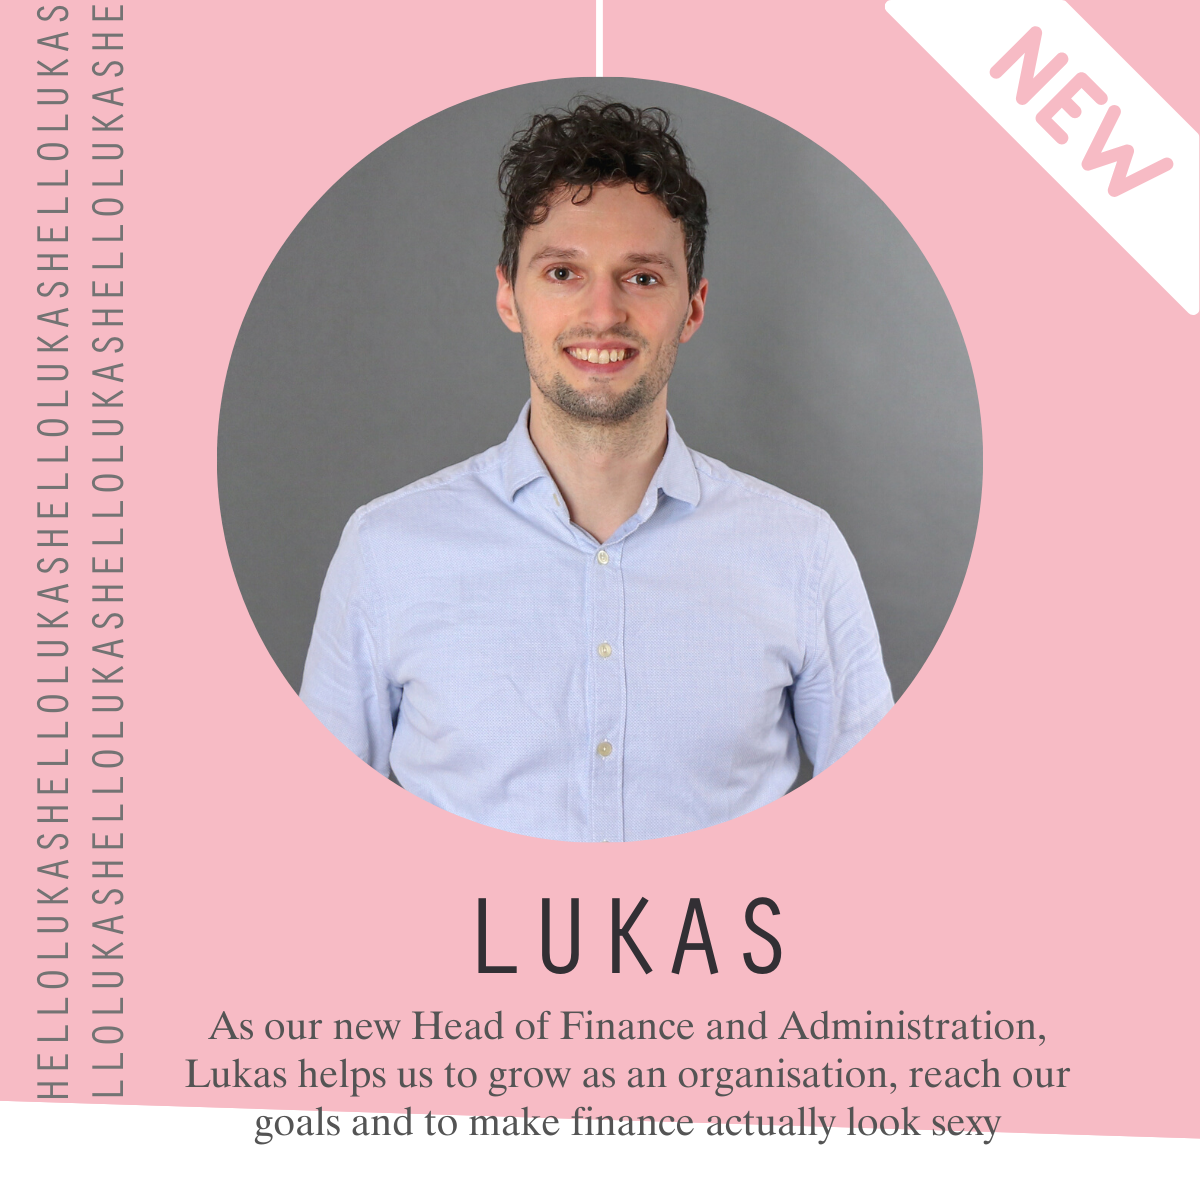 Hi Lukas, how are you? - Our New Head of Finance & Administration